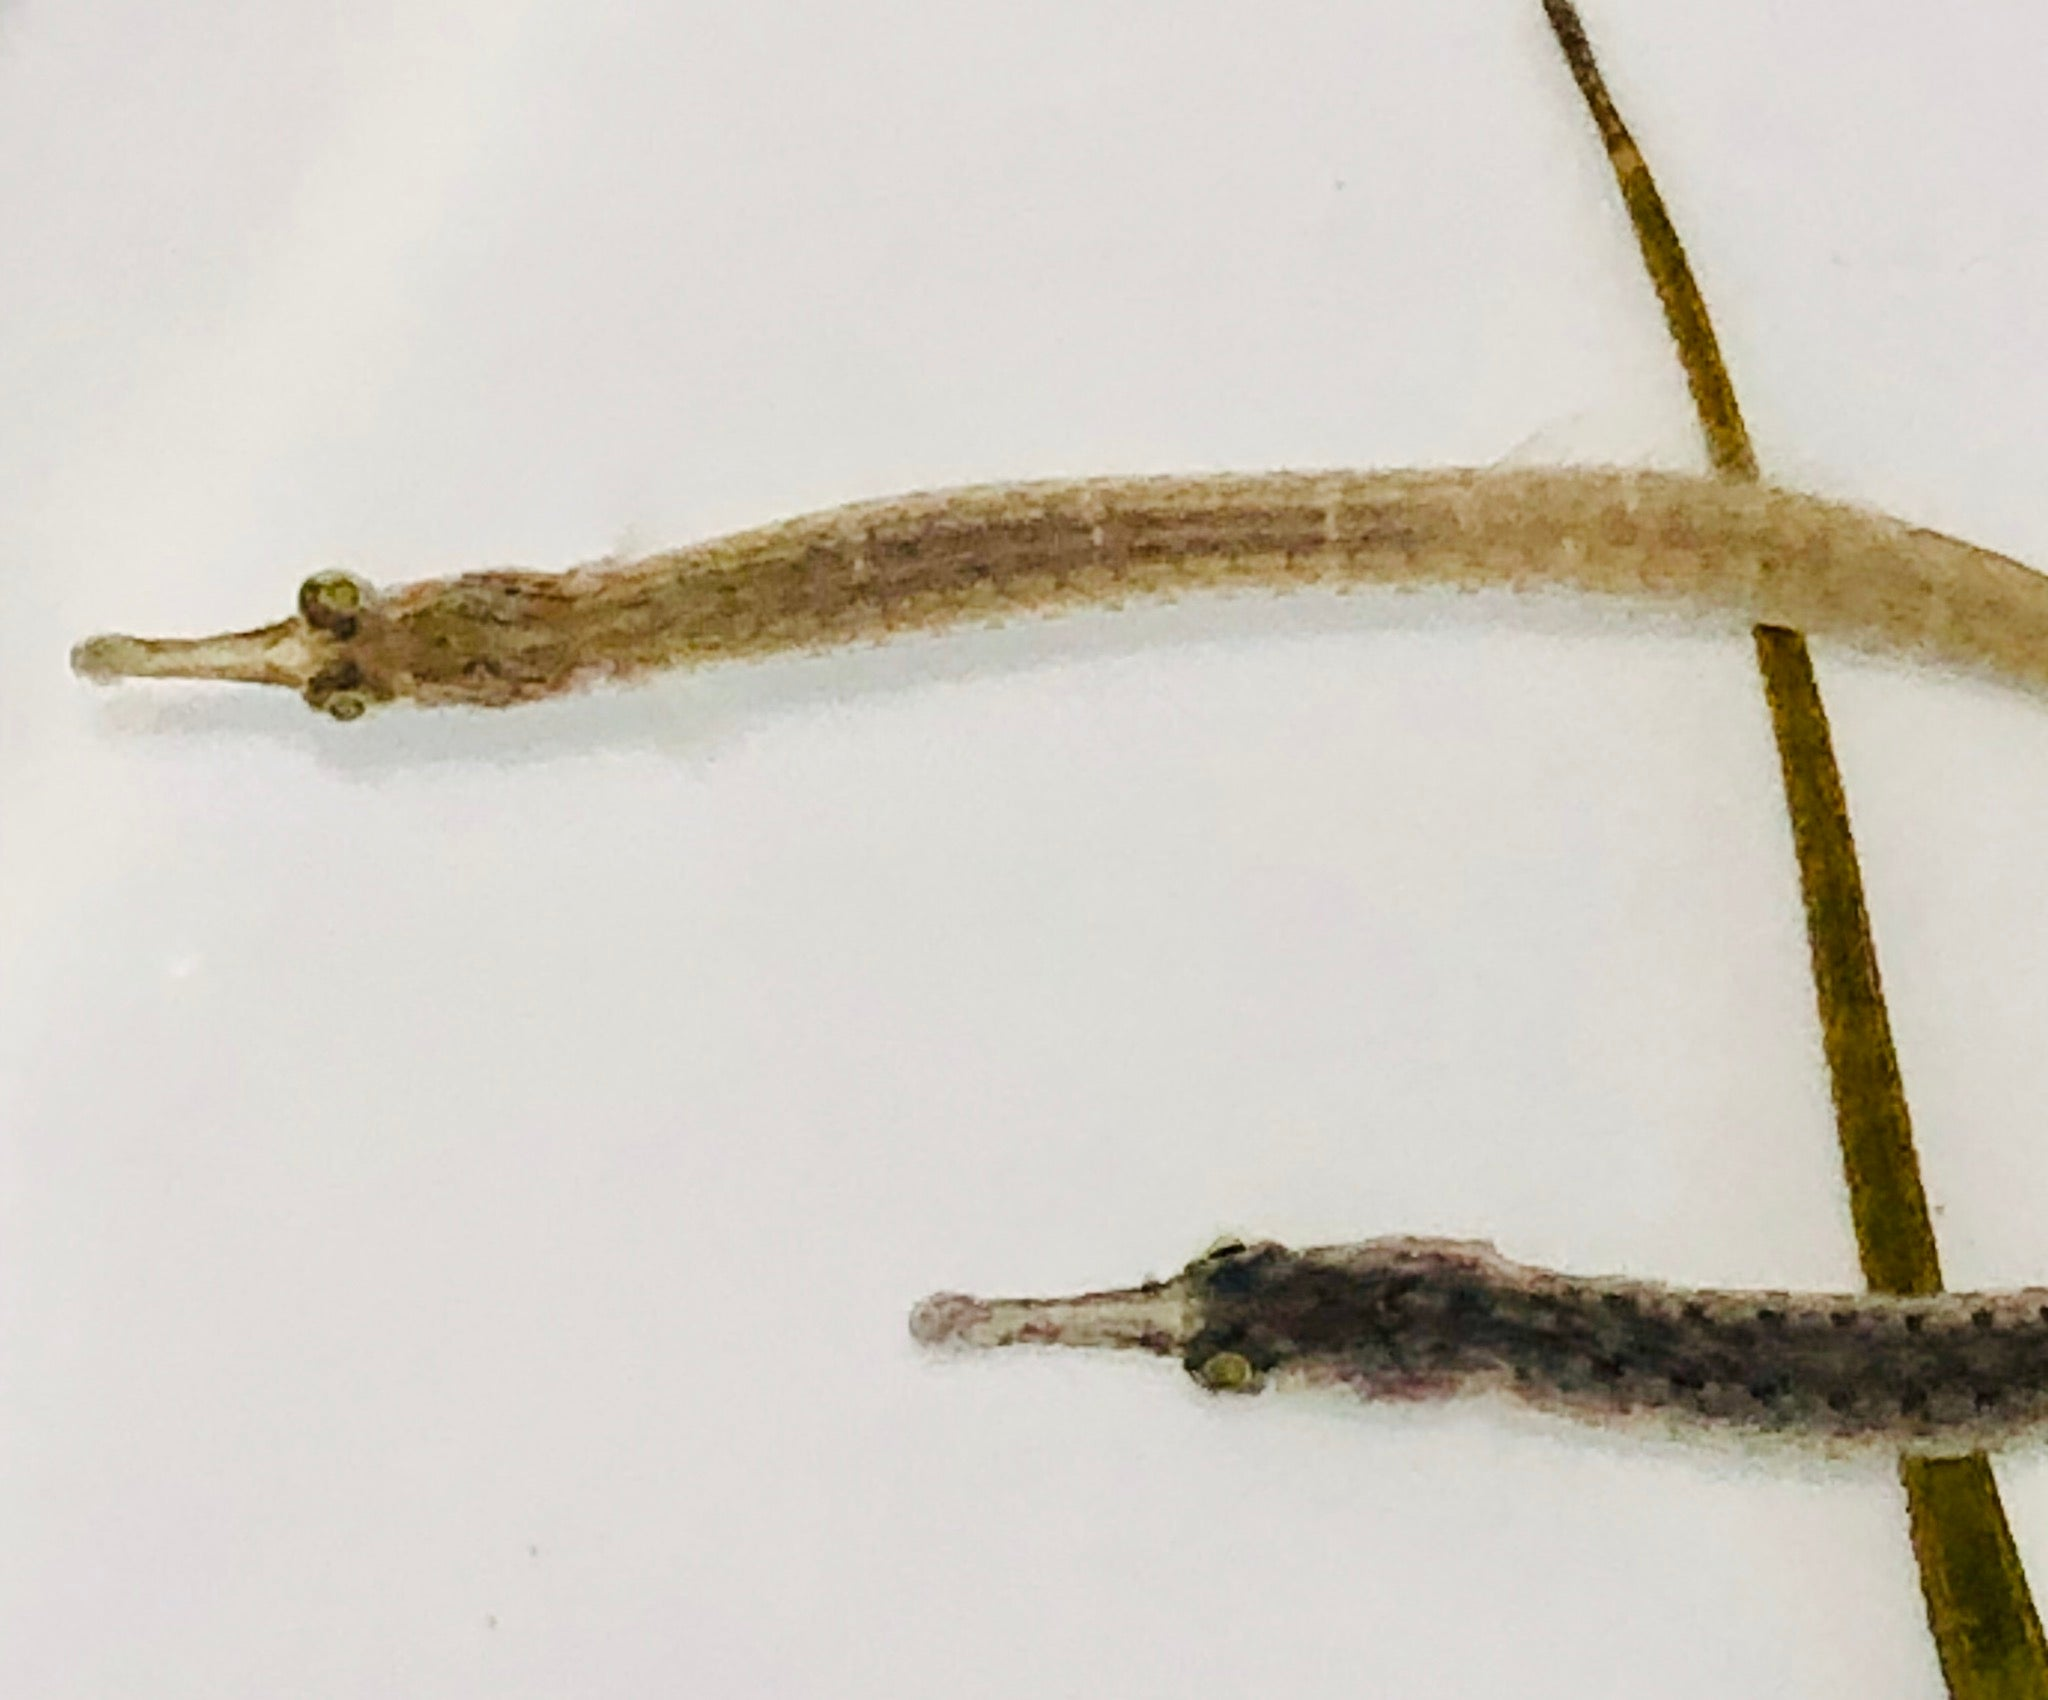 Aquarium Conditioned-Long Nose Pipefish